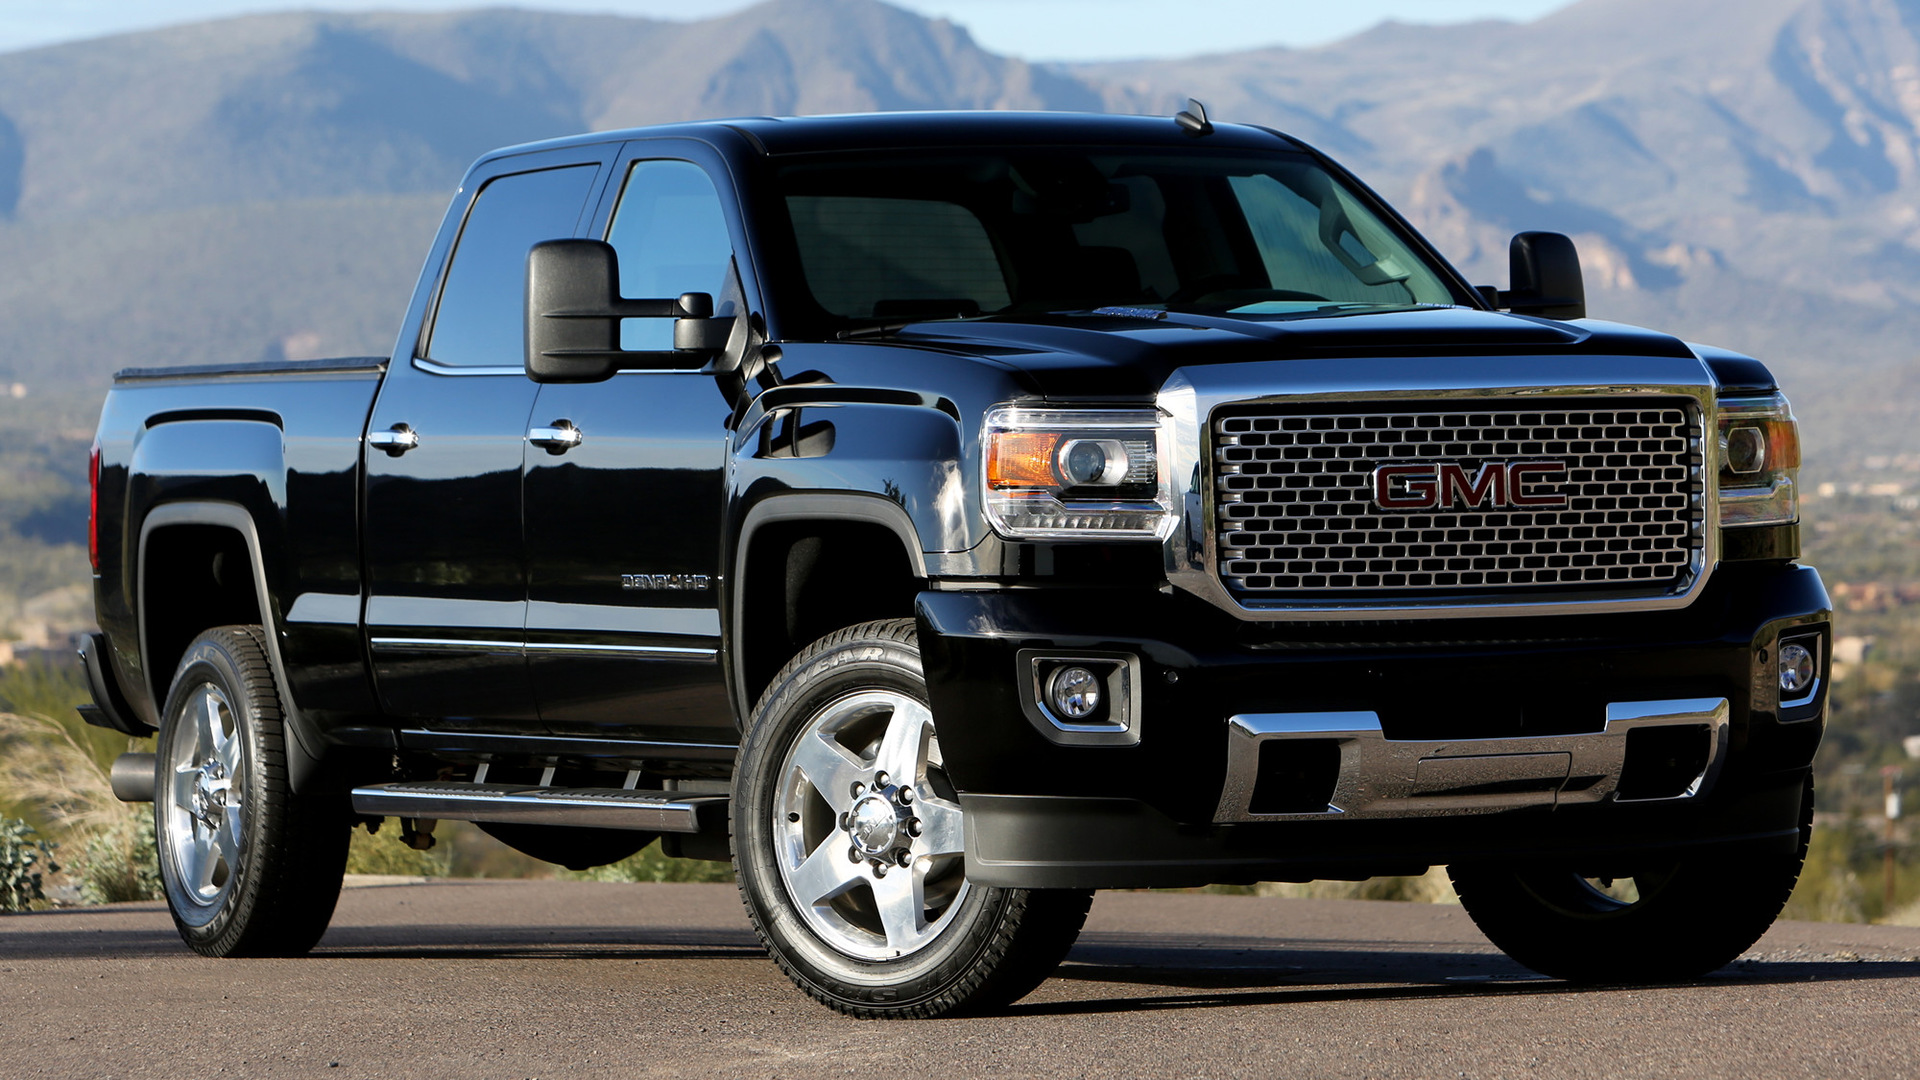 2015 Gmc Sierra Denali 2500 Hd Crew Cab Wallpapers And